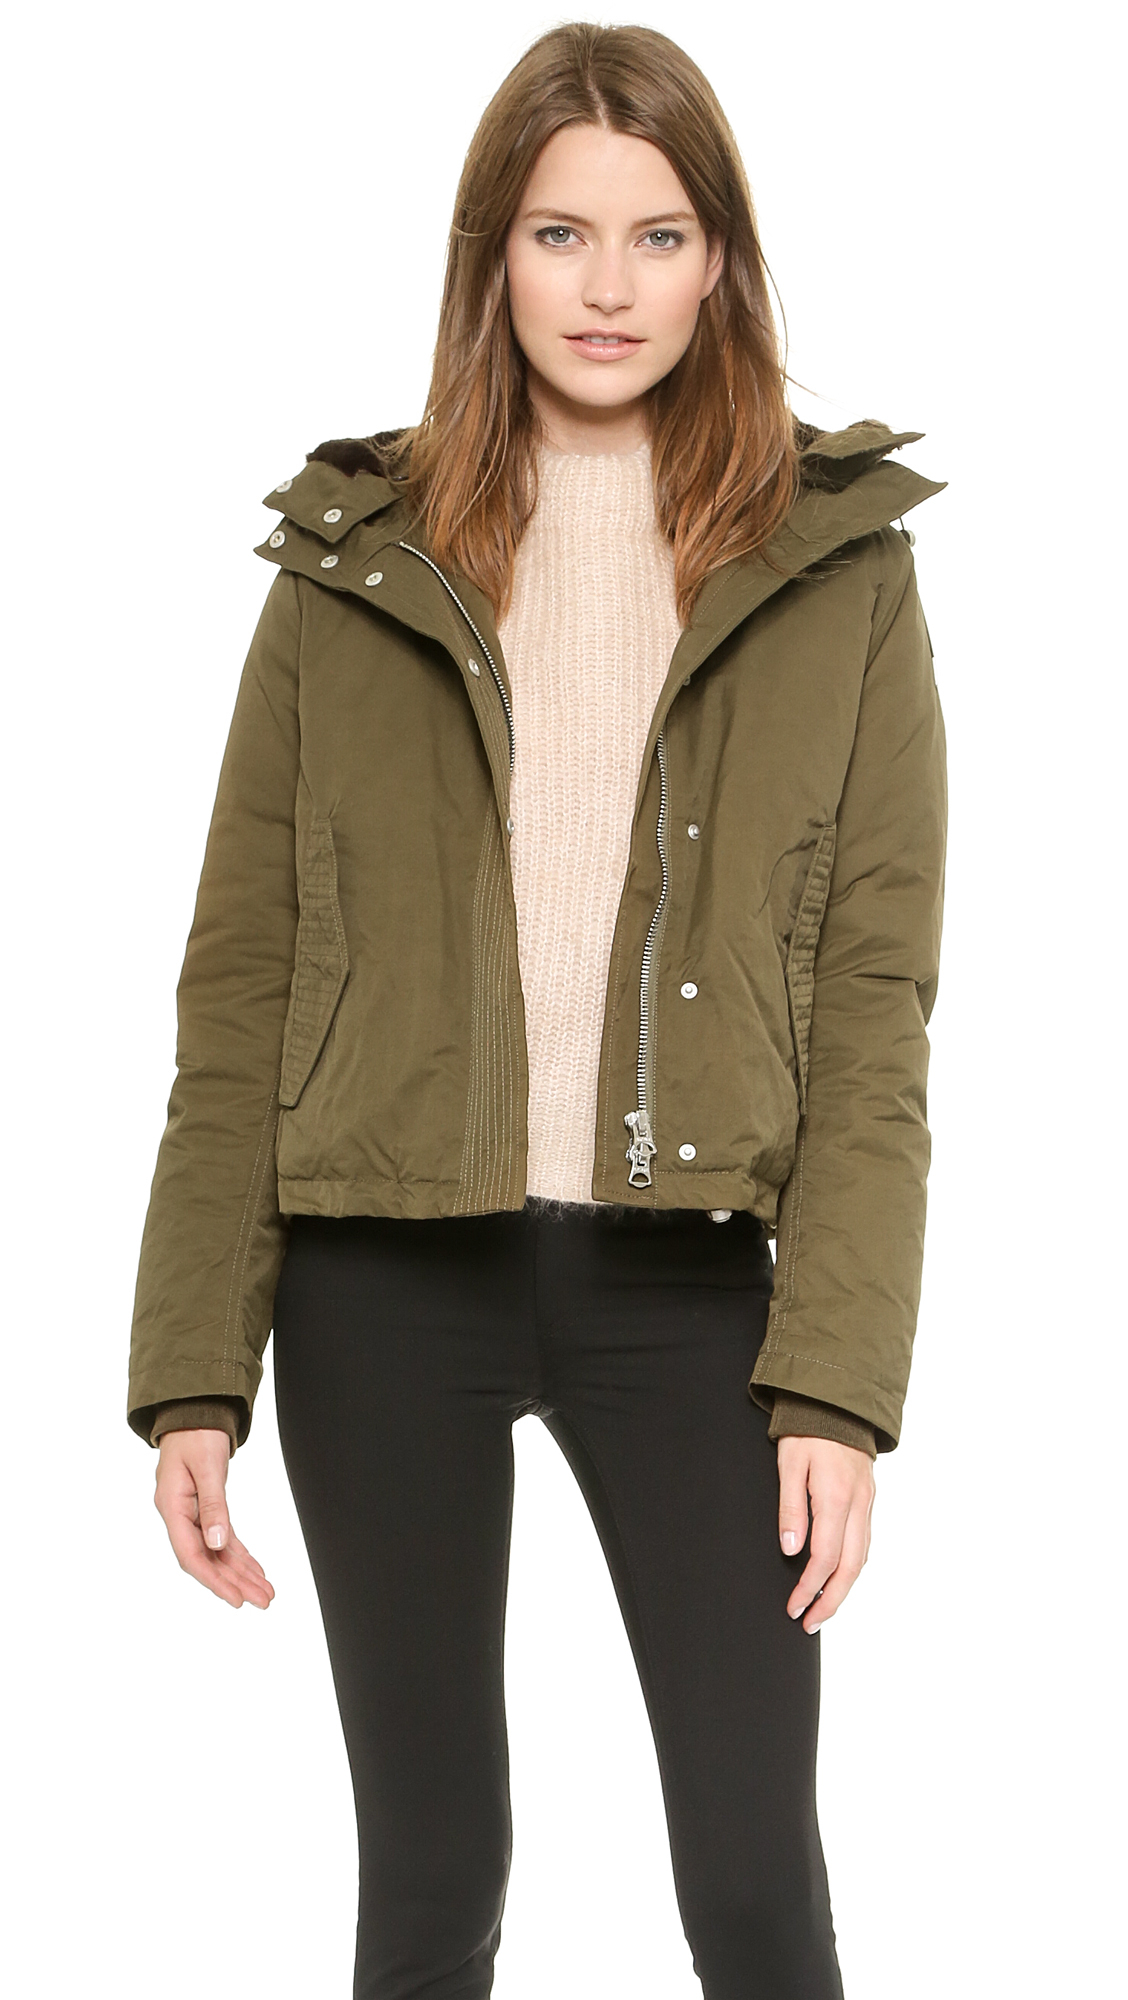 Acne studios Powder Short Parka - Green in Green | Lyst